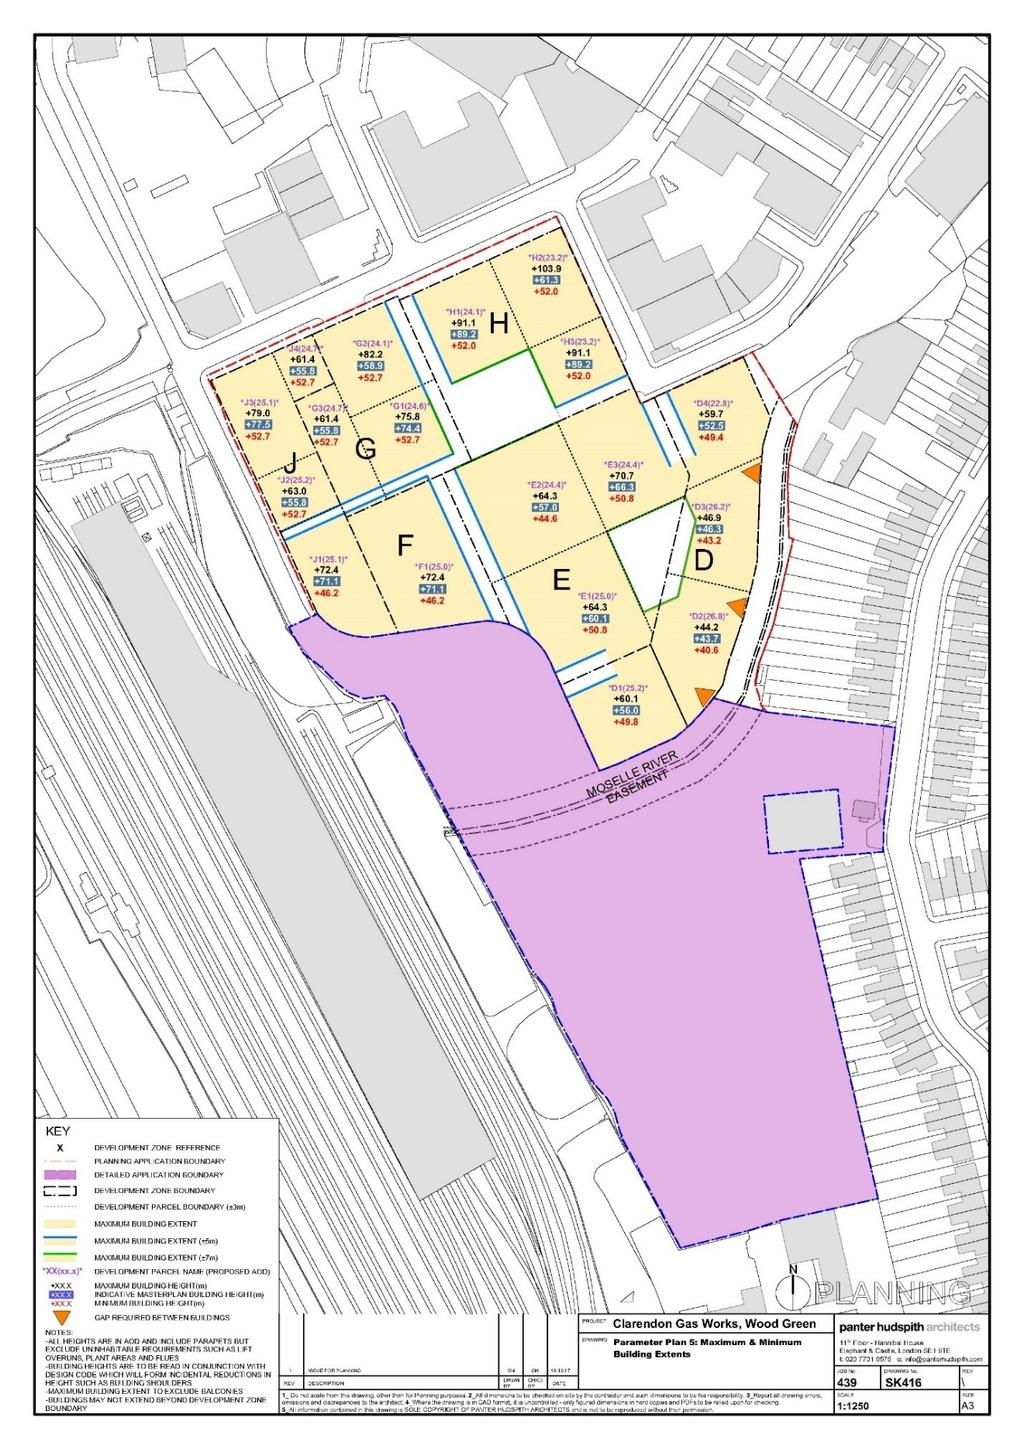 between Development Zone D and the rear gardens of properties 63 155 Hornsey Park Road.